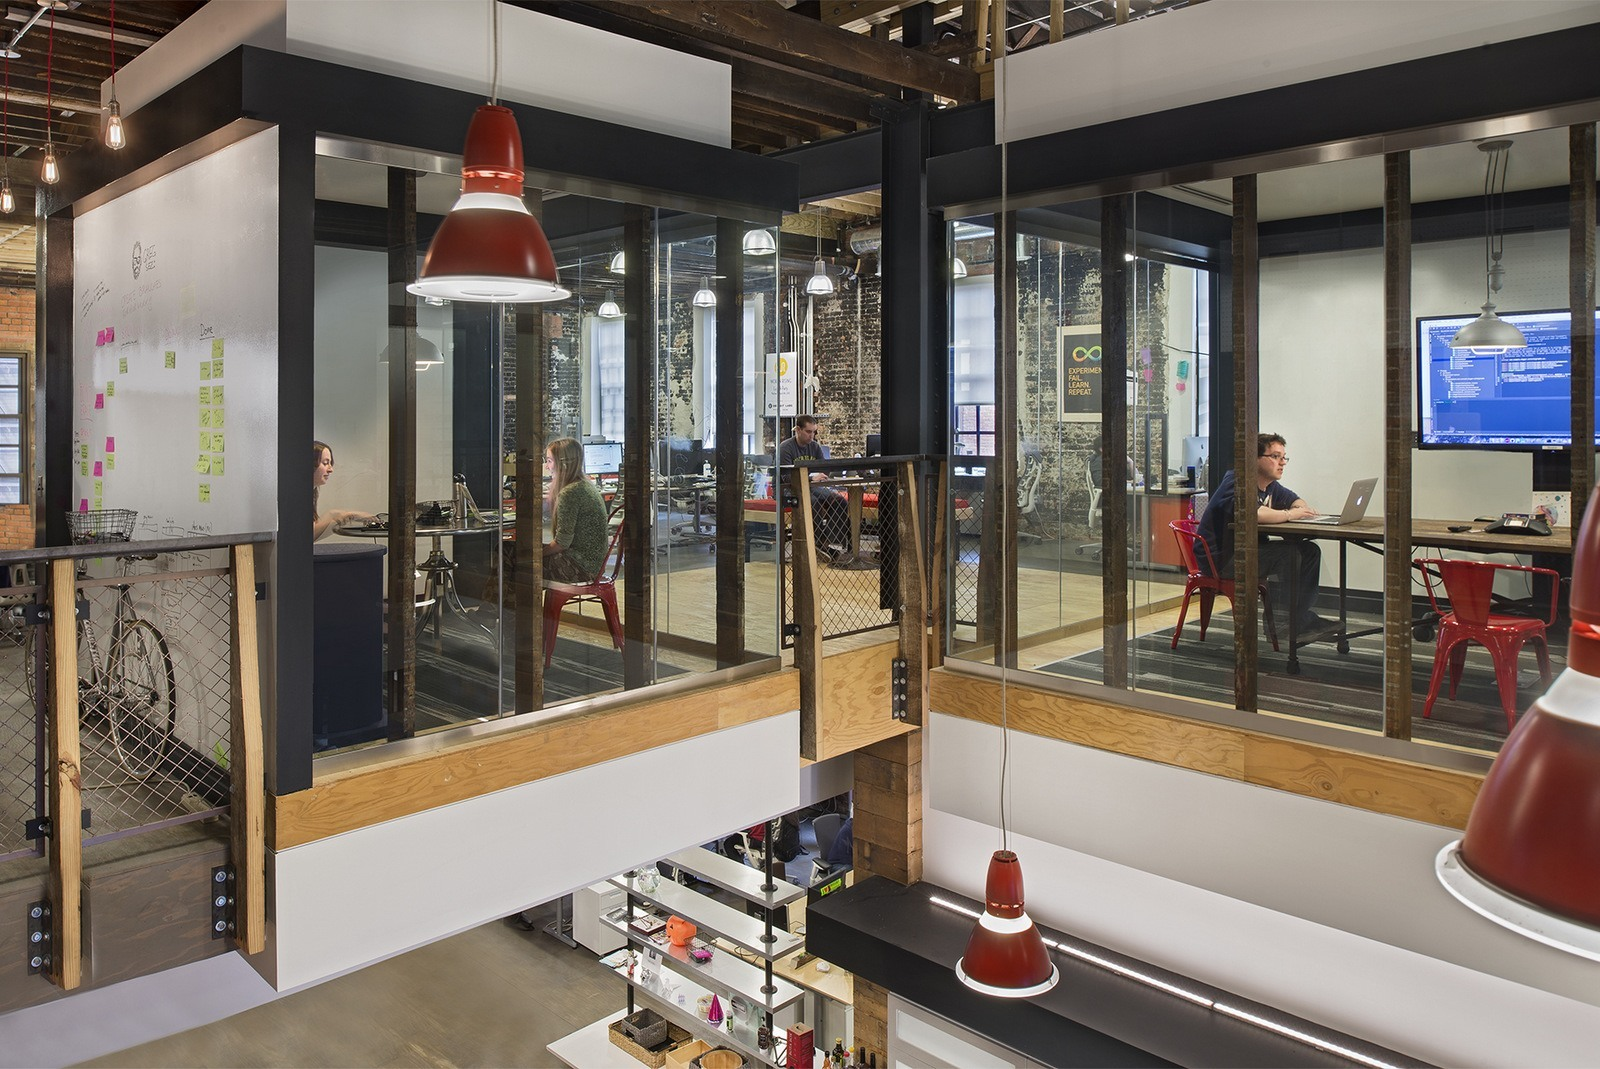 Check Out Photos of Detroit Labs' Cool Office - Officelovin'